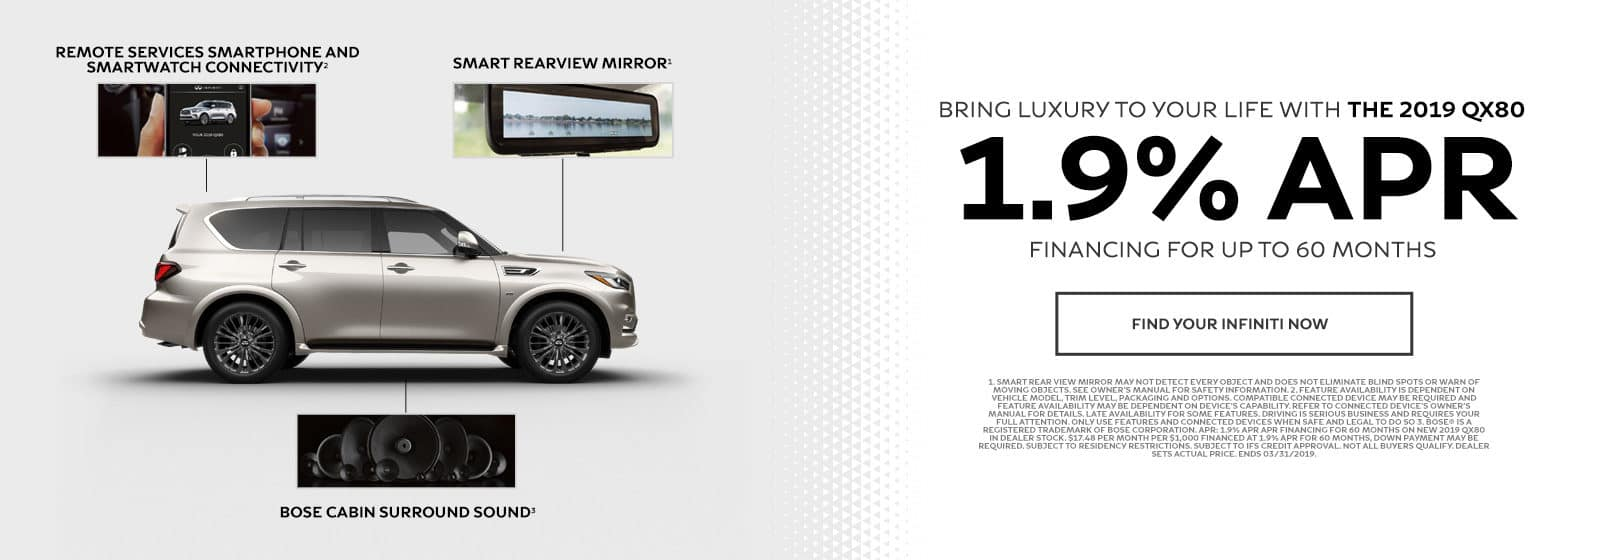 Bring luxury to your life with with the 2019 QX80 - 1.9% APR financing for up to 60 months - Find your INFINITI now